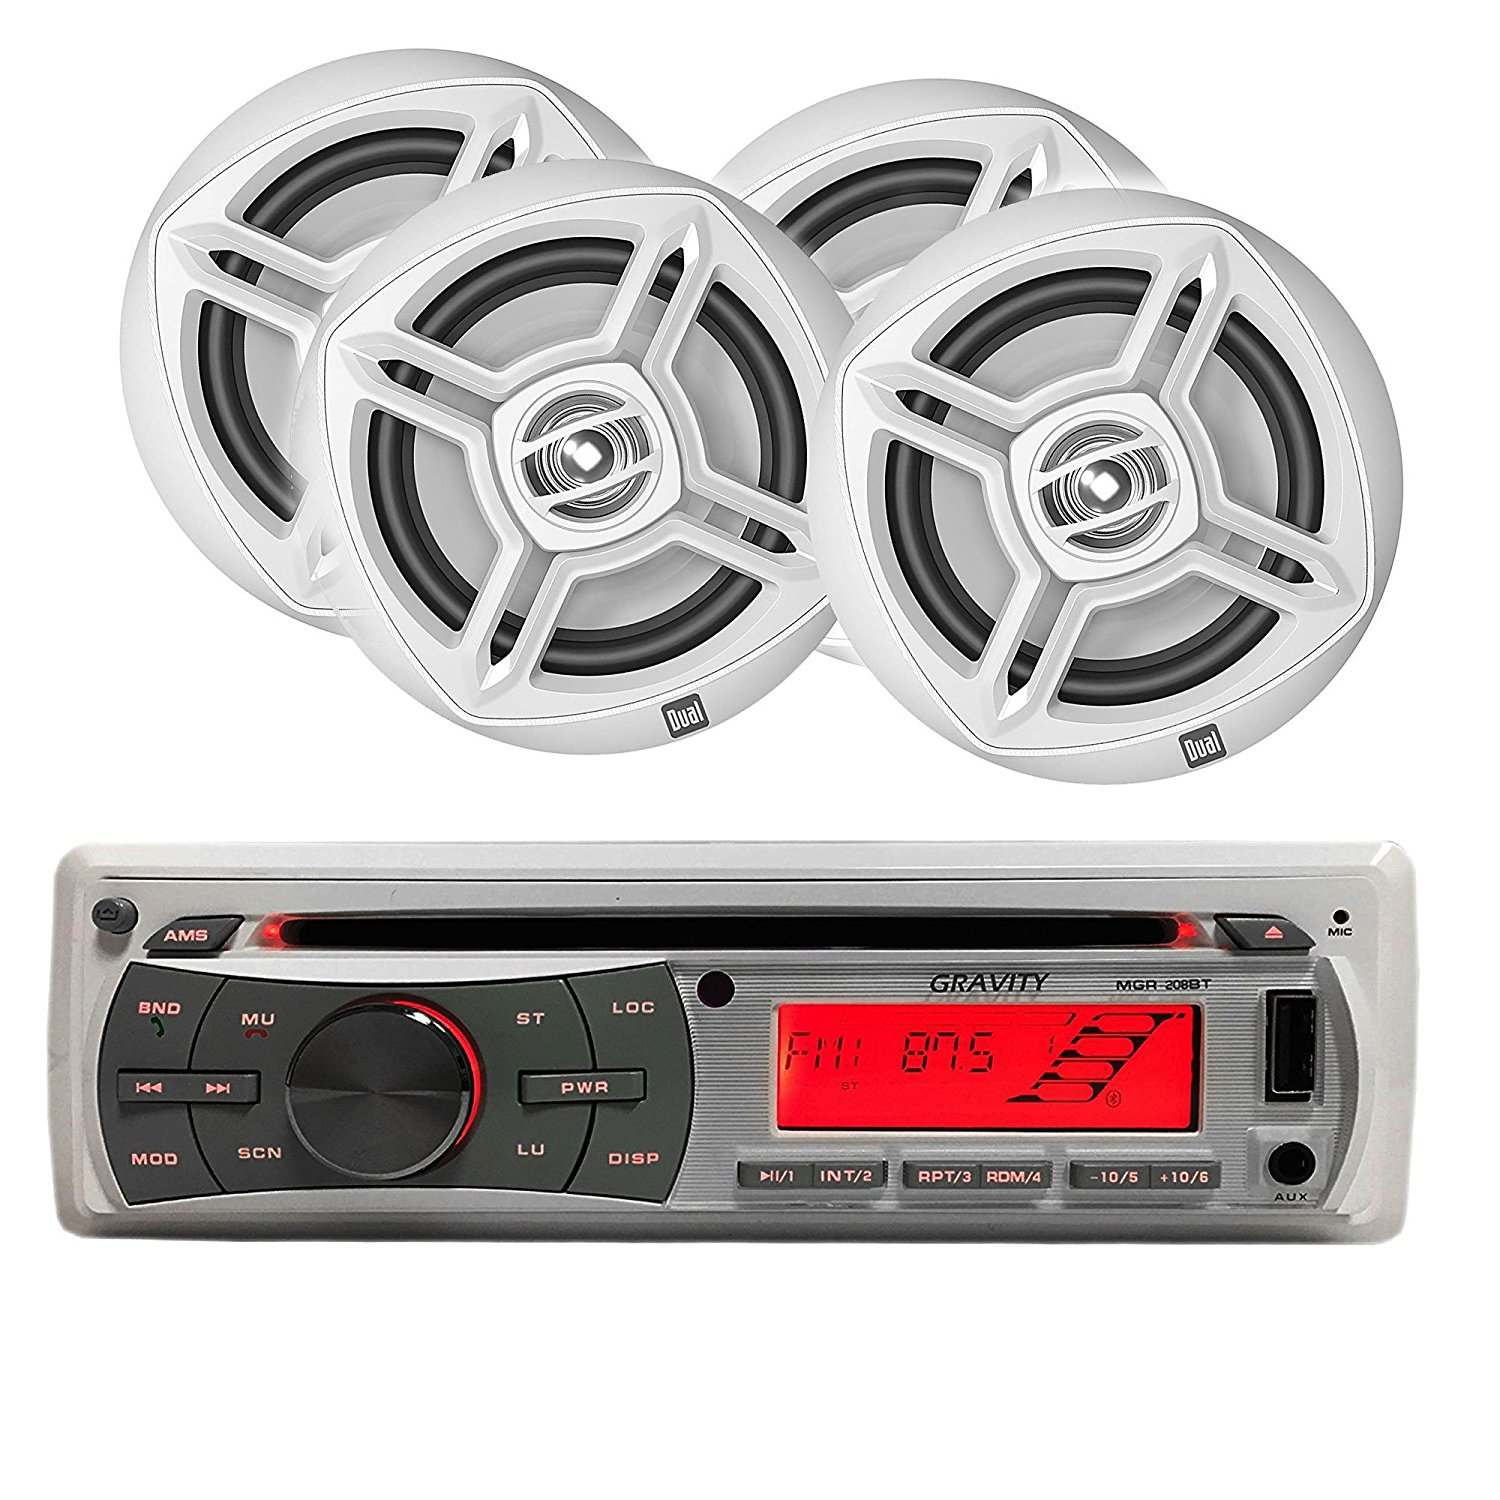 MARINE, YACHT PACKAGE - Gravity MGR-208BT + DMP672 FOUR 6.5 inch Speakers